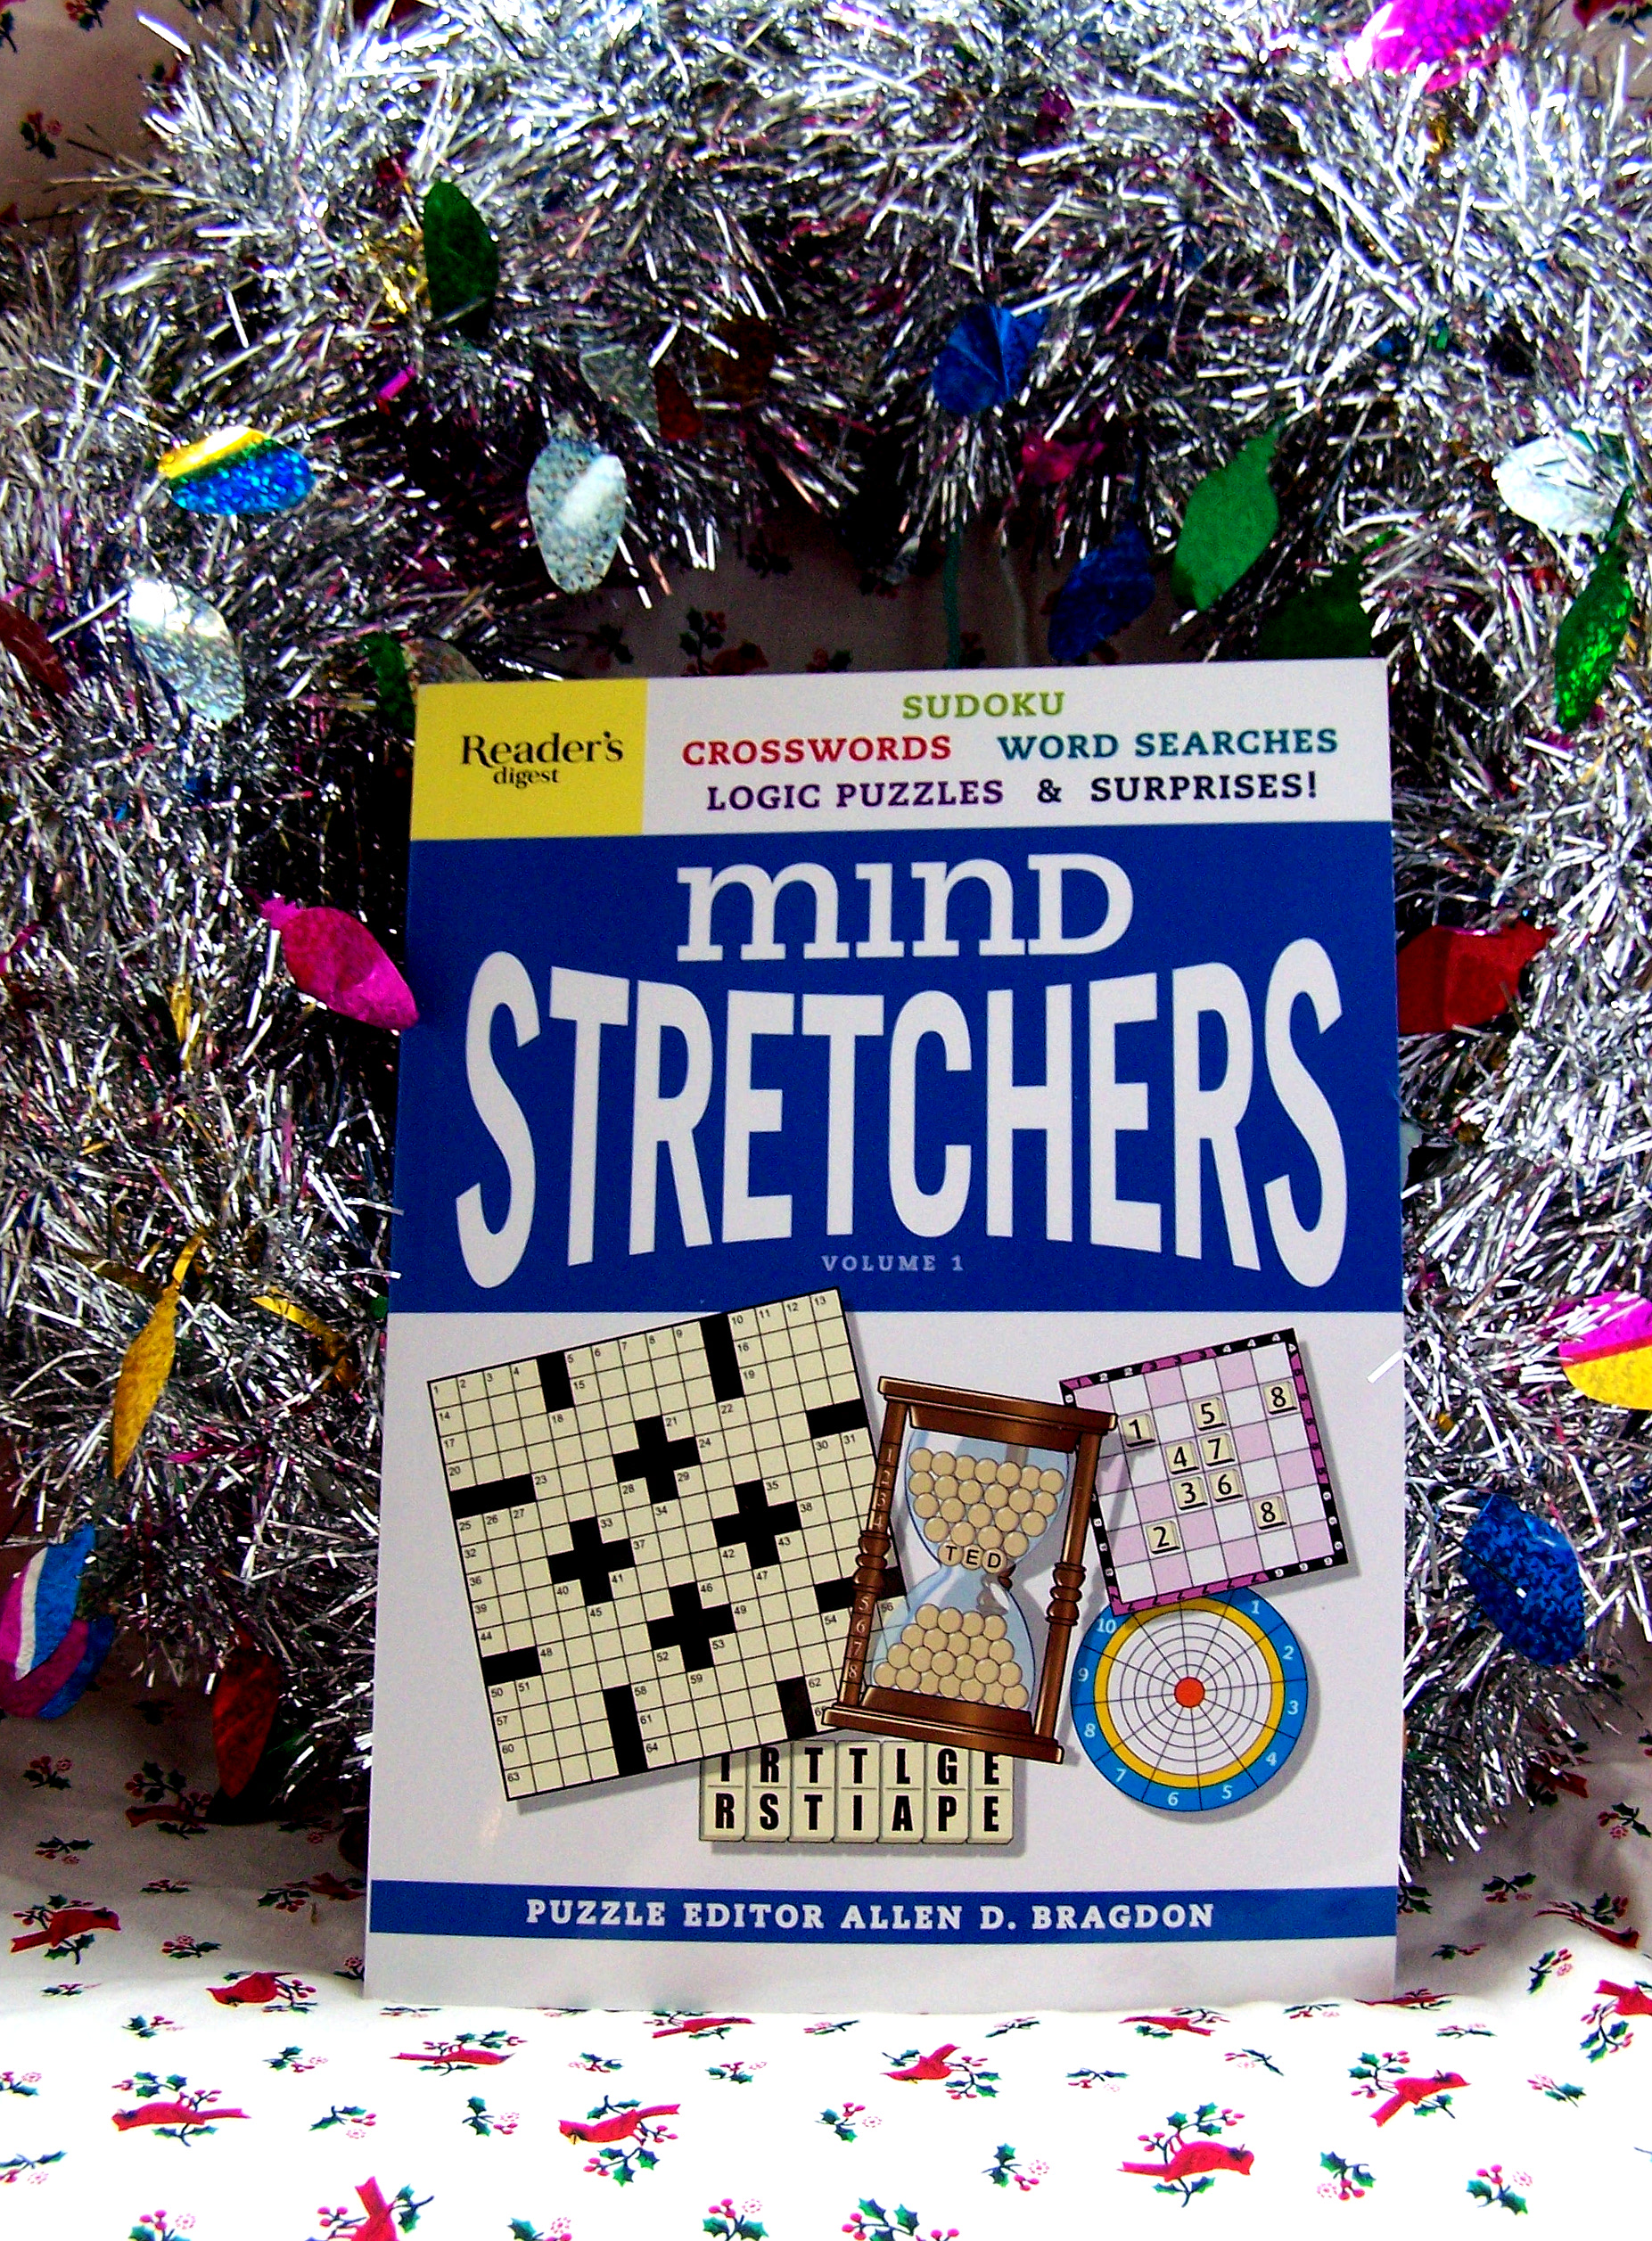 mind stretchers, holiday gift guide, book books reading thought thinking problems games crossword soduku puzzles reviews giveaway win prizes christmas readers digest